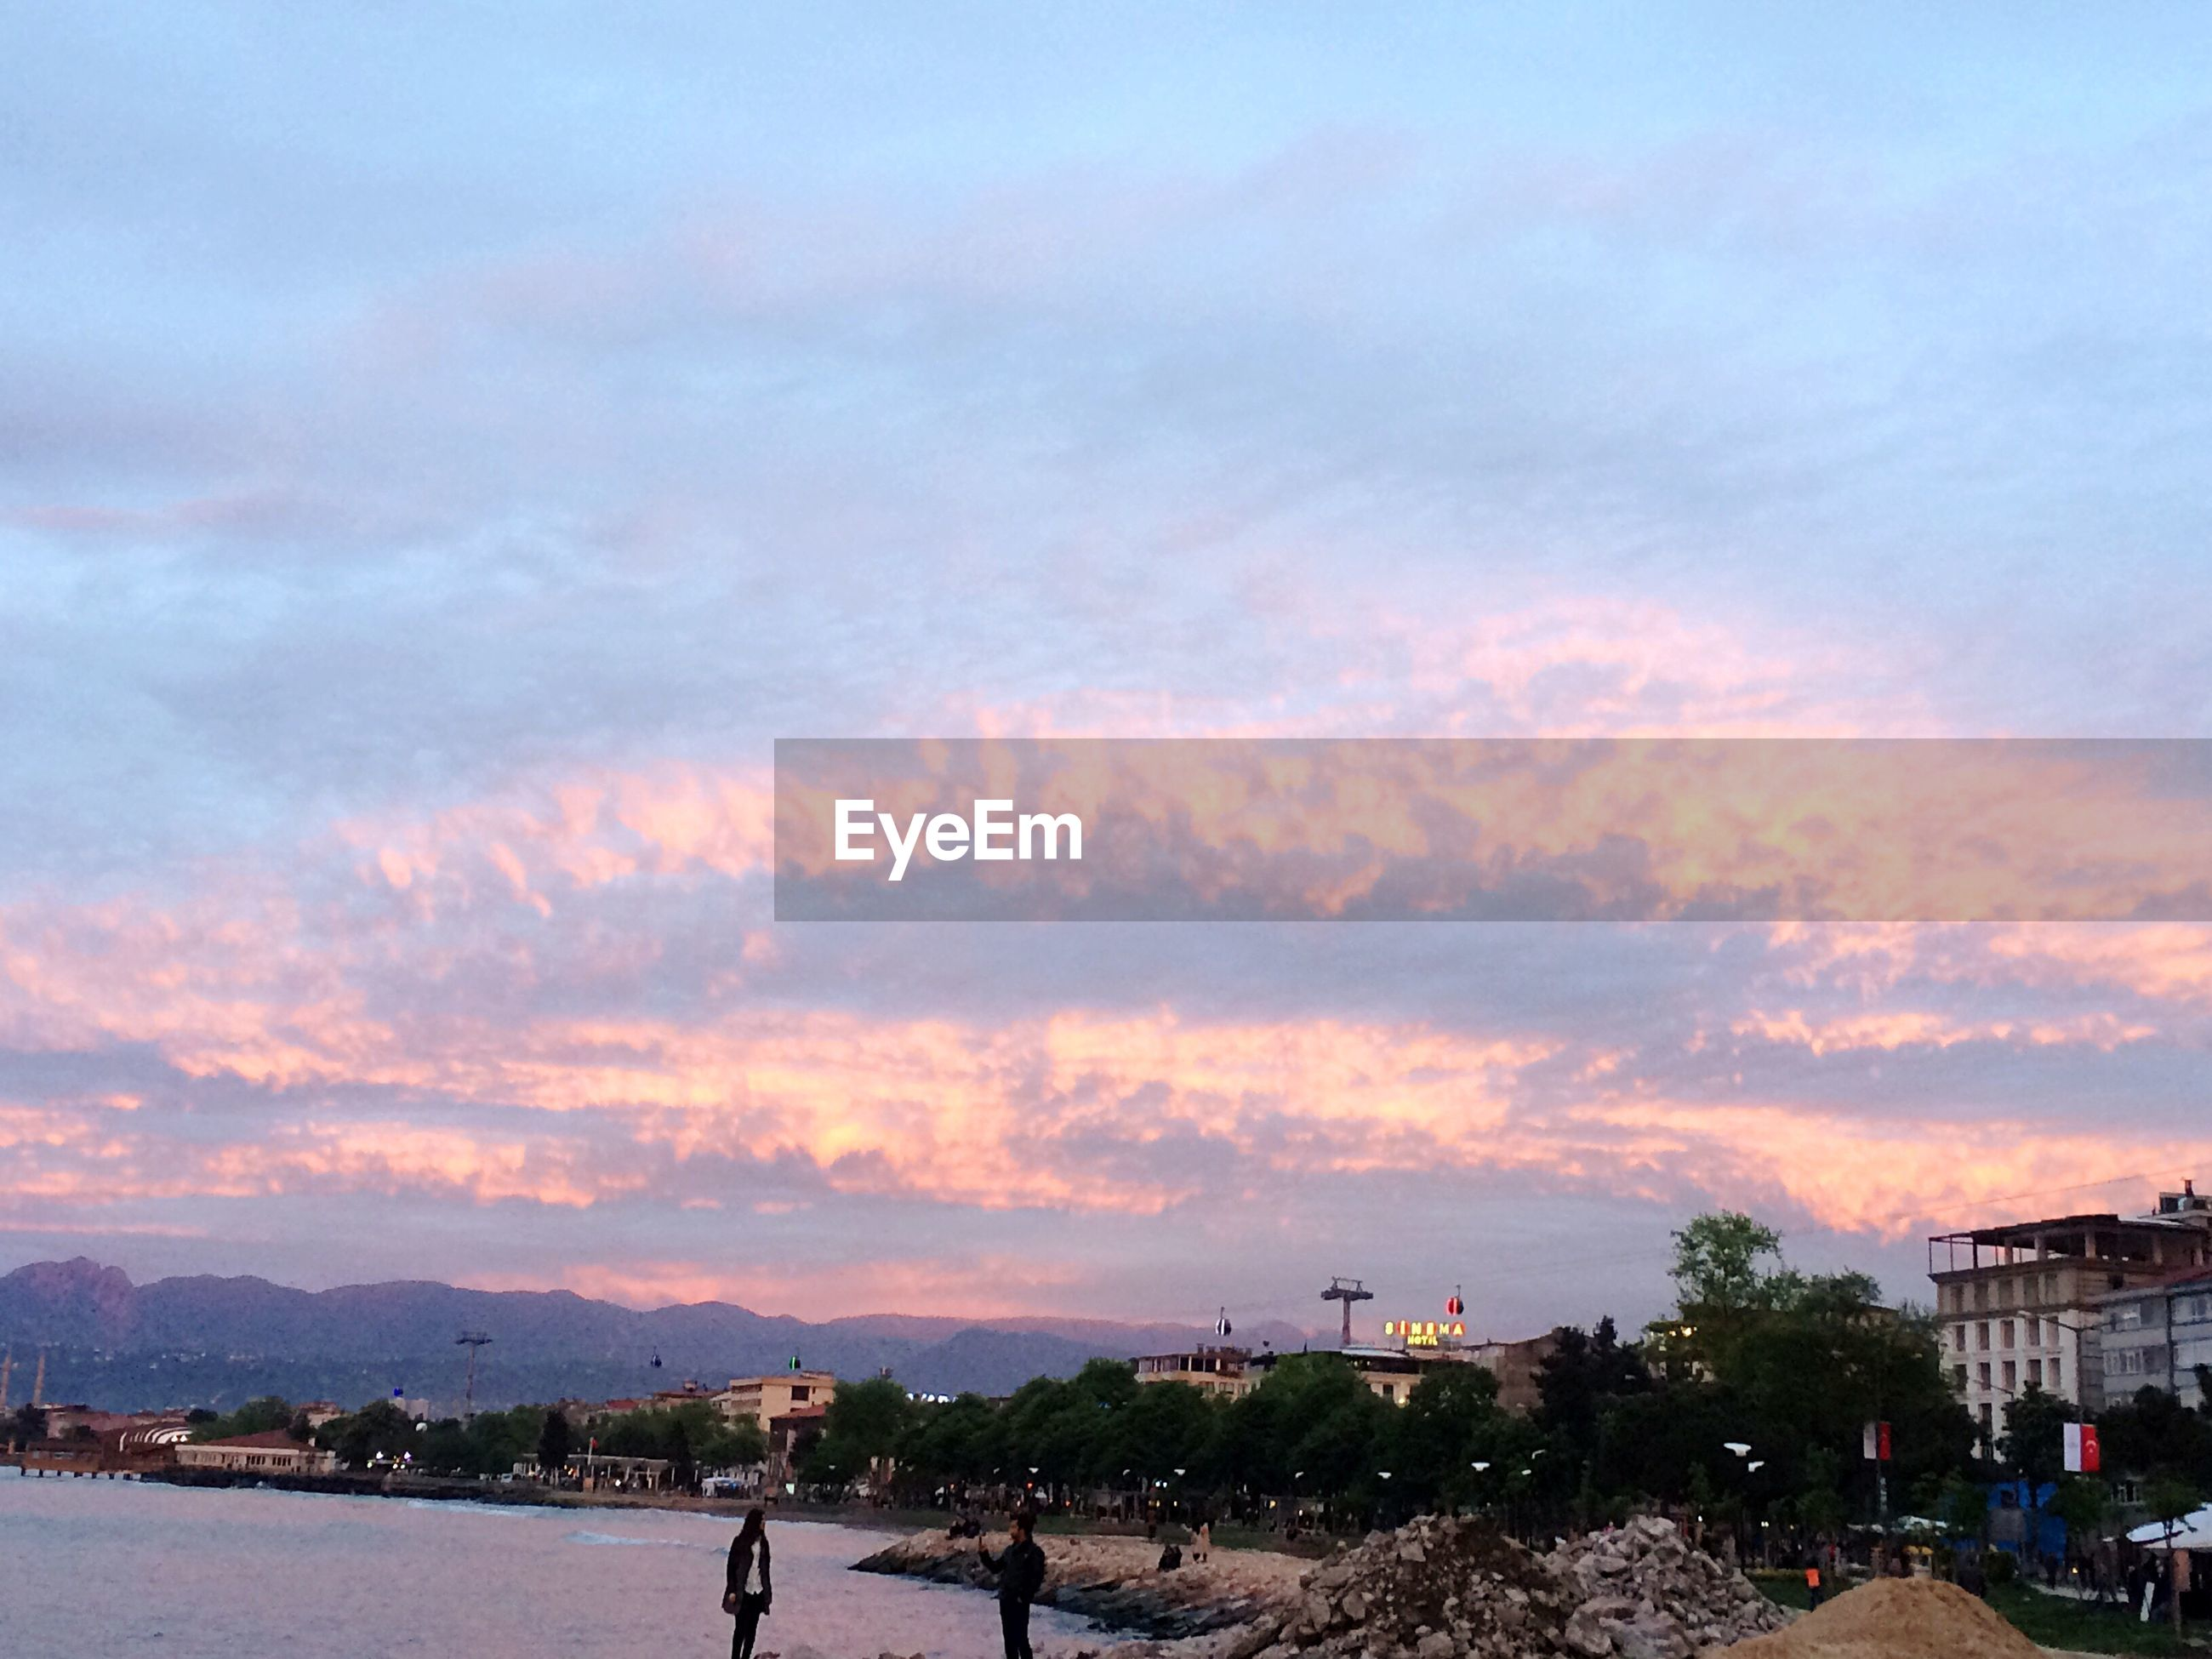 sky, cloud - sky, sunset, built structure, real people, outdoors, building exterior, architecture, nature, tree, large group of people, men, beauty in nature, beach, scenics, women, city, water, day, people